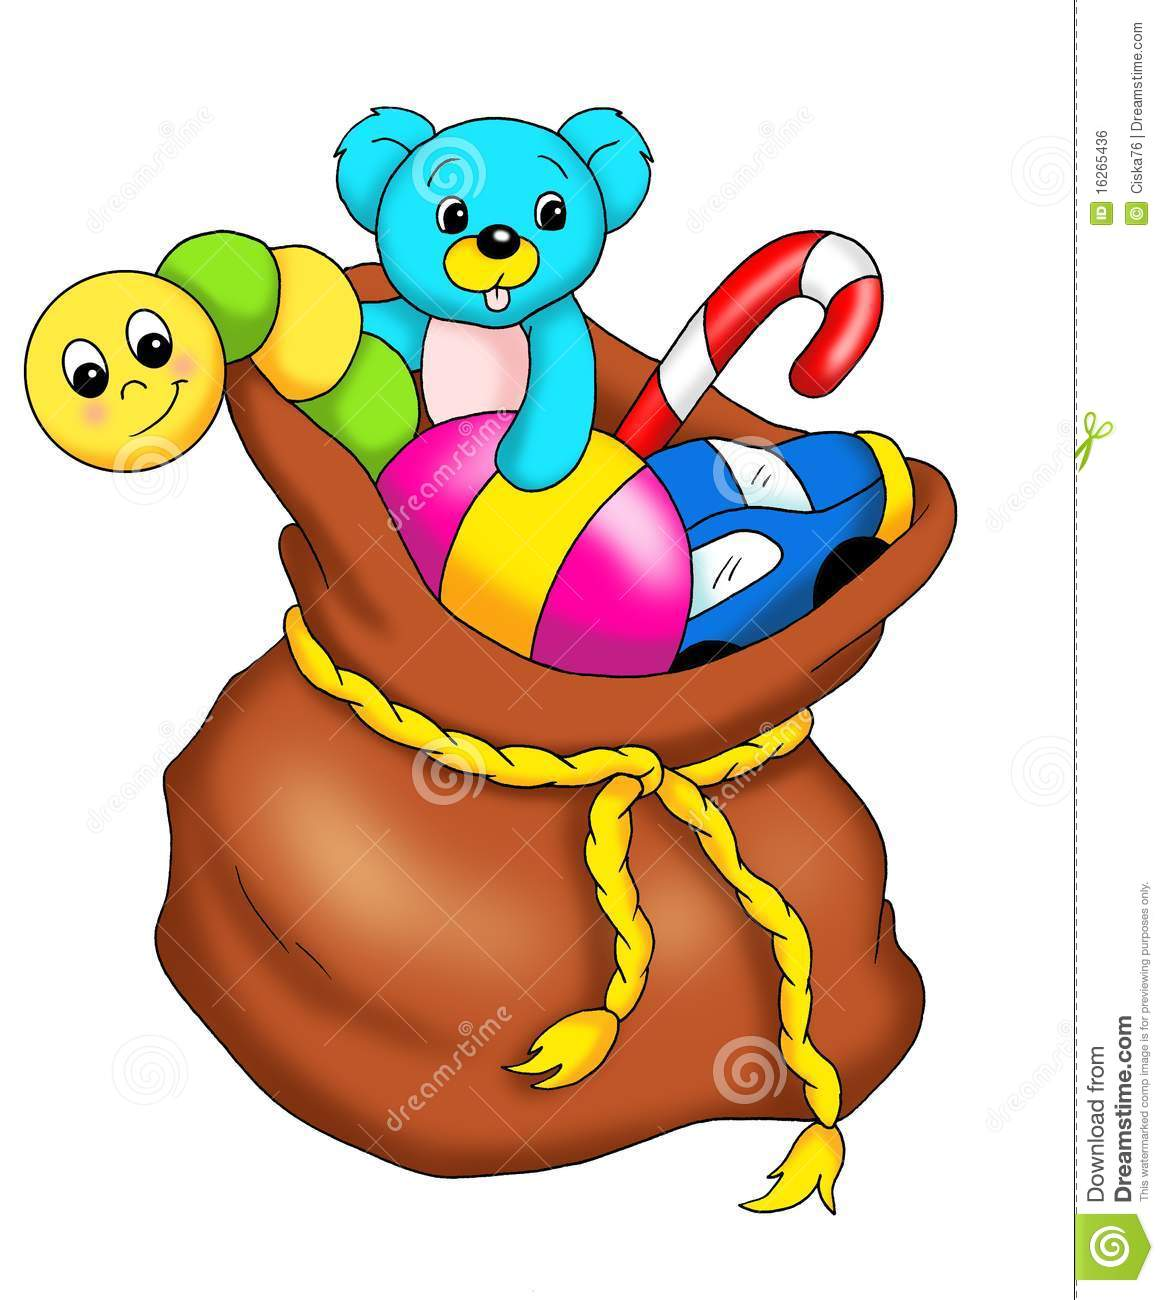 Sack Of Toys : Sack with toys royalty free stock image